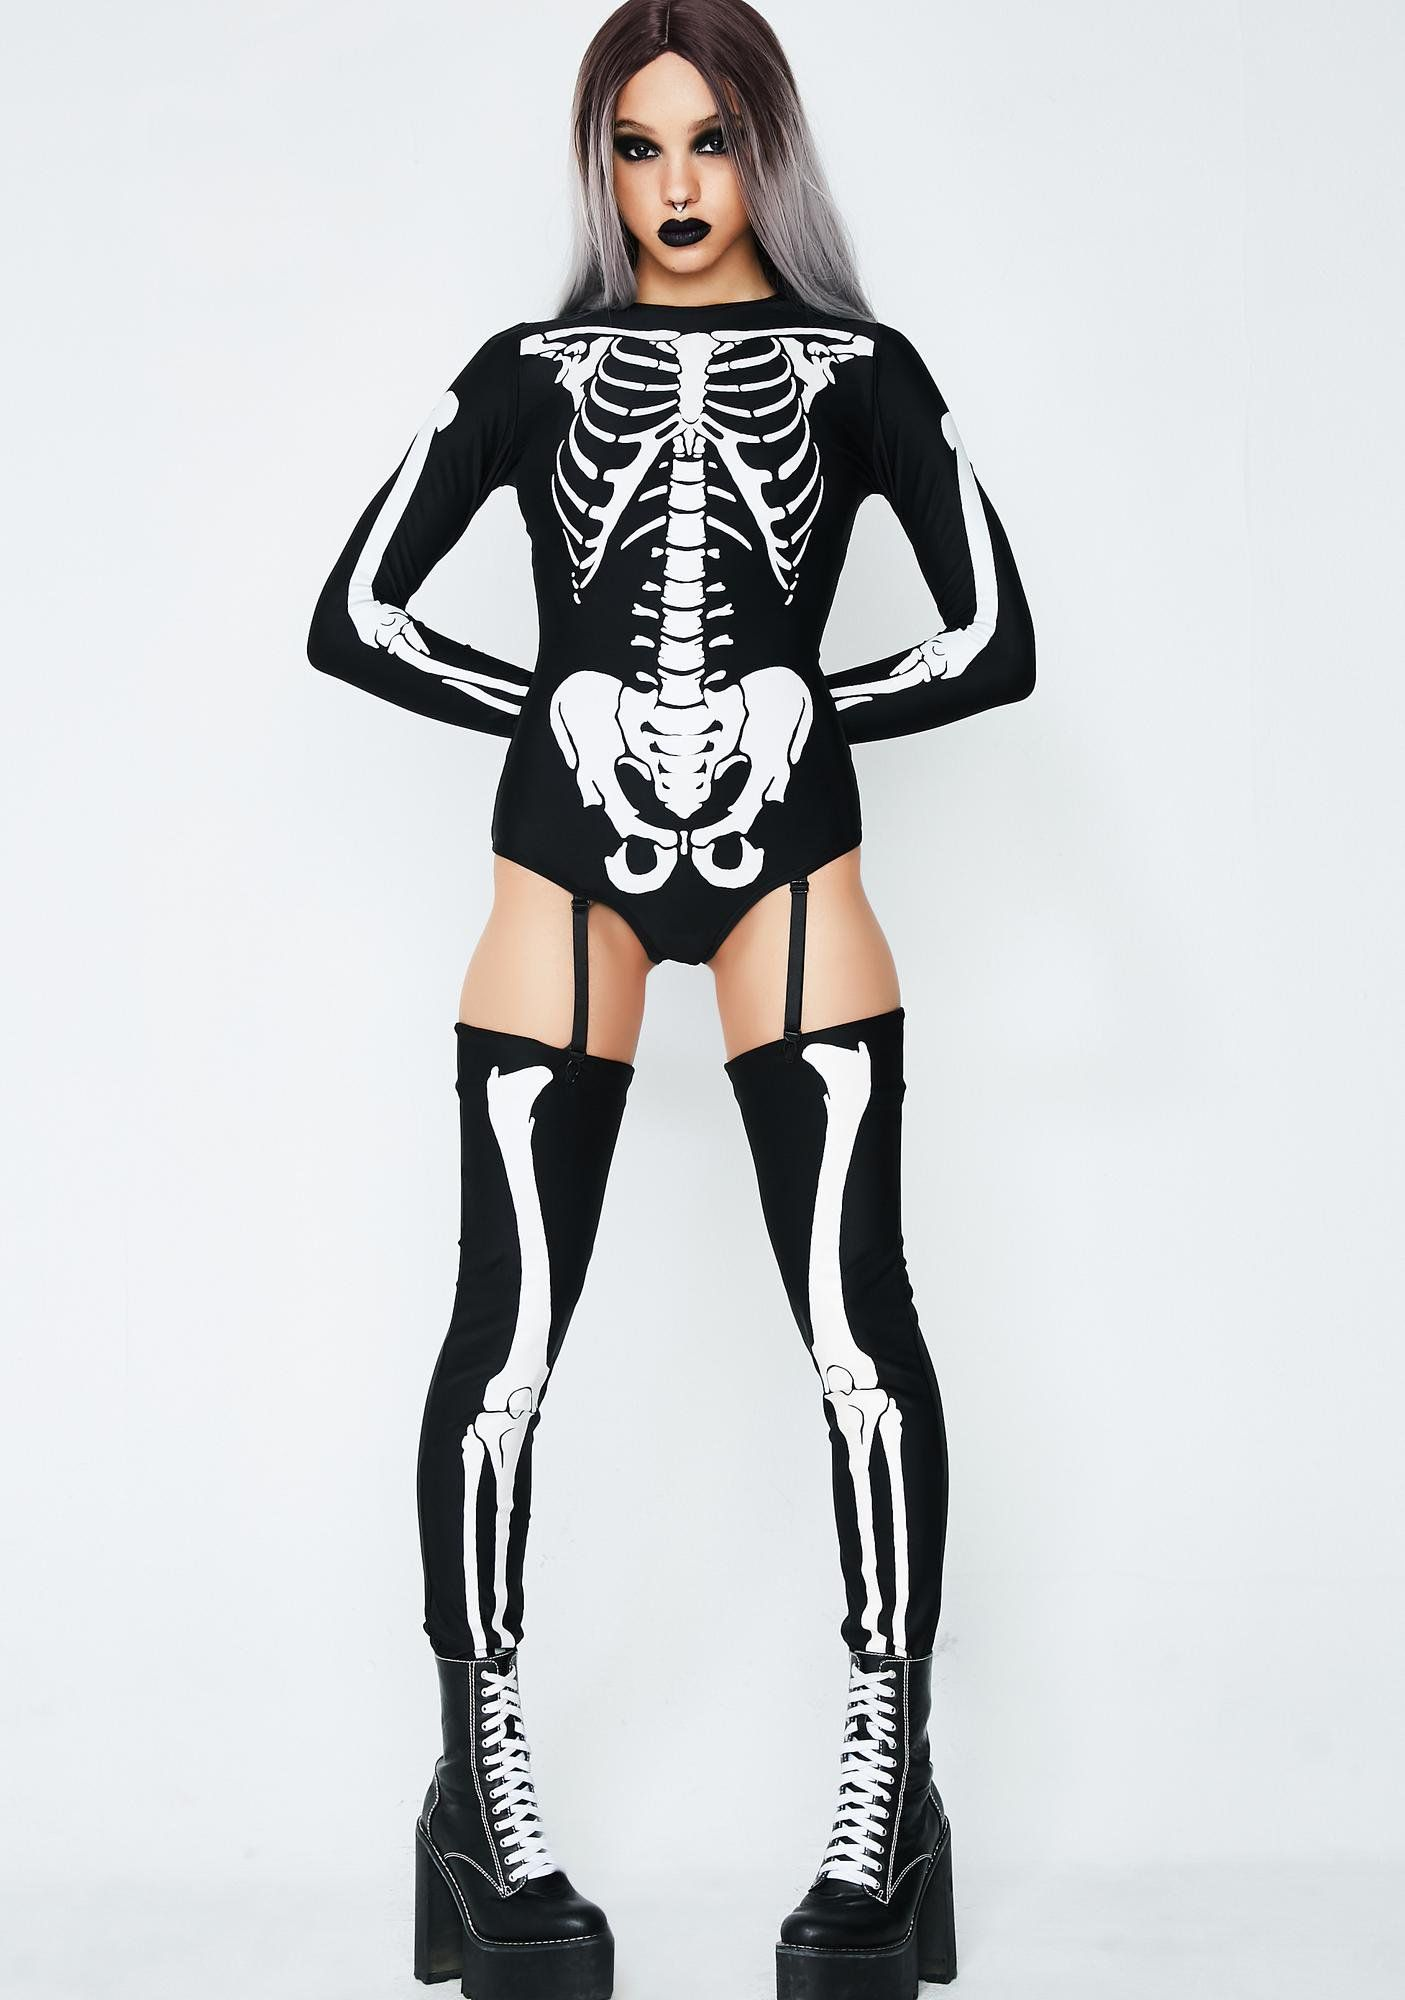 e53310d9d4 Bad To The Bone Skeleton Costume cuz yer trouble goes bone deep! This long  sleeve